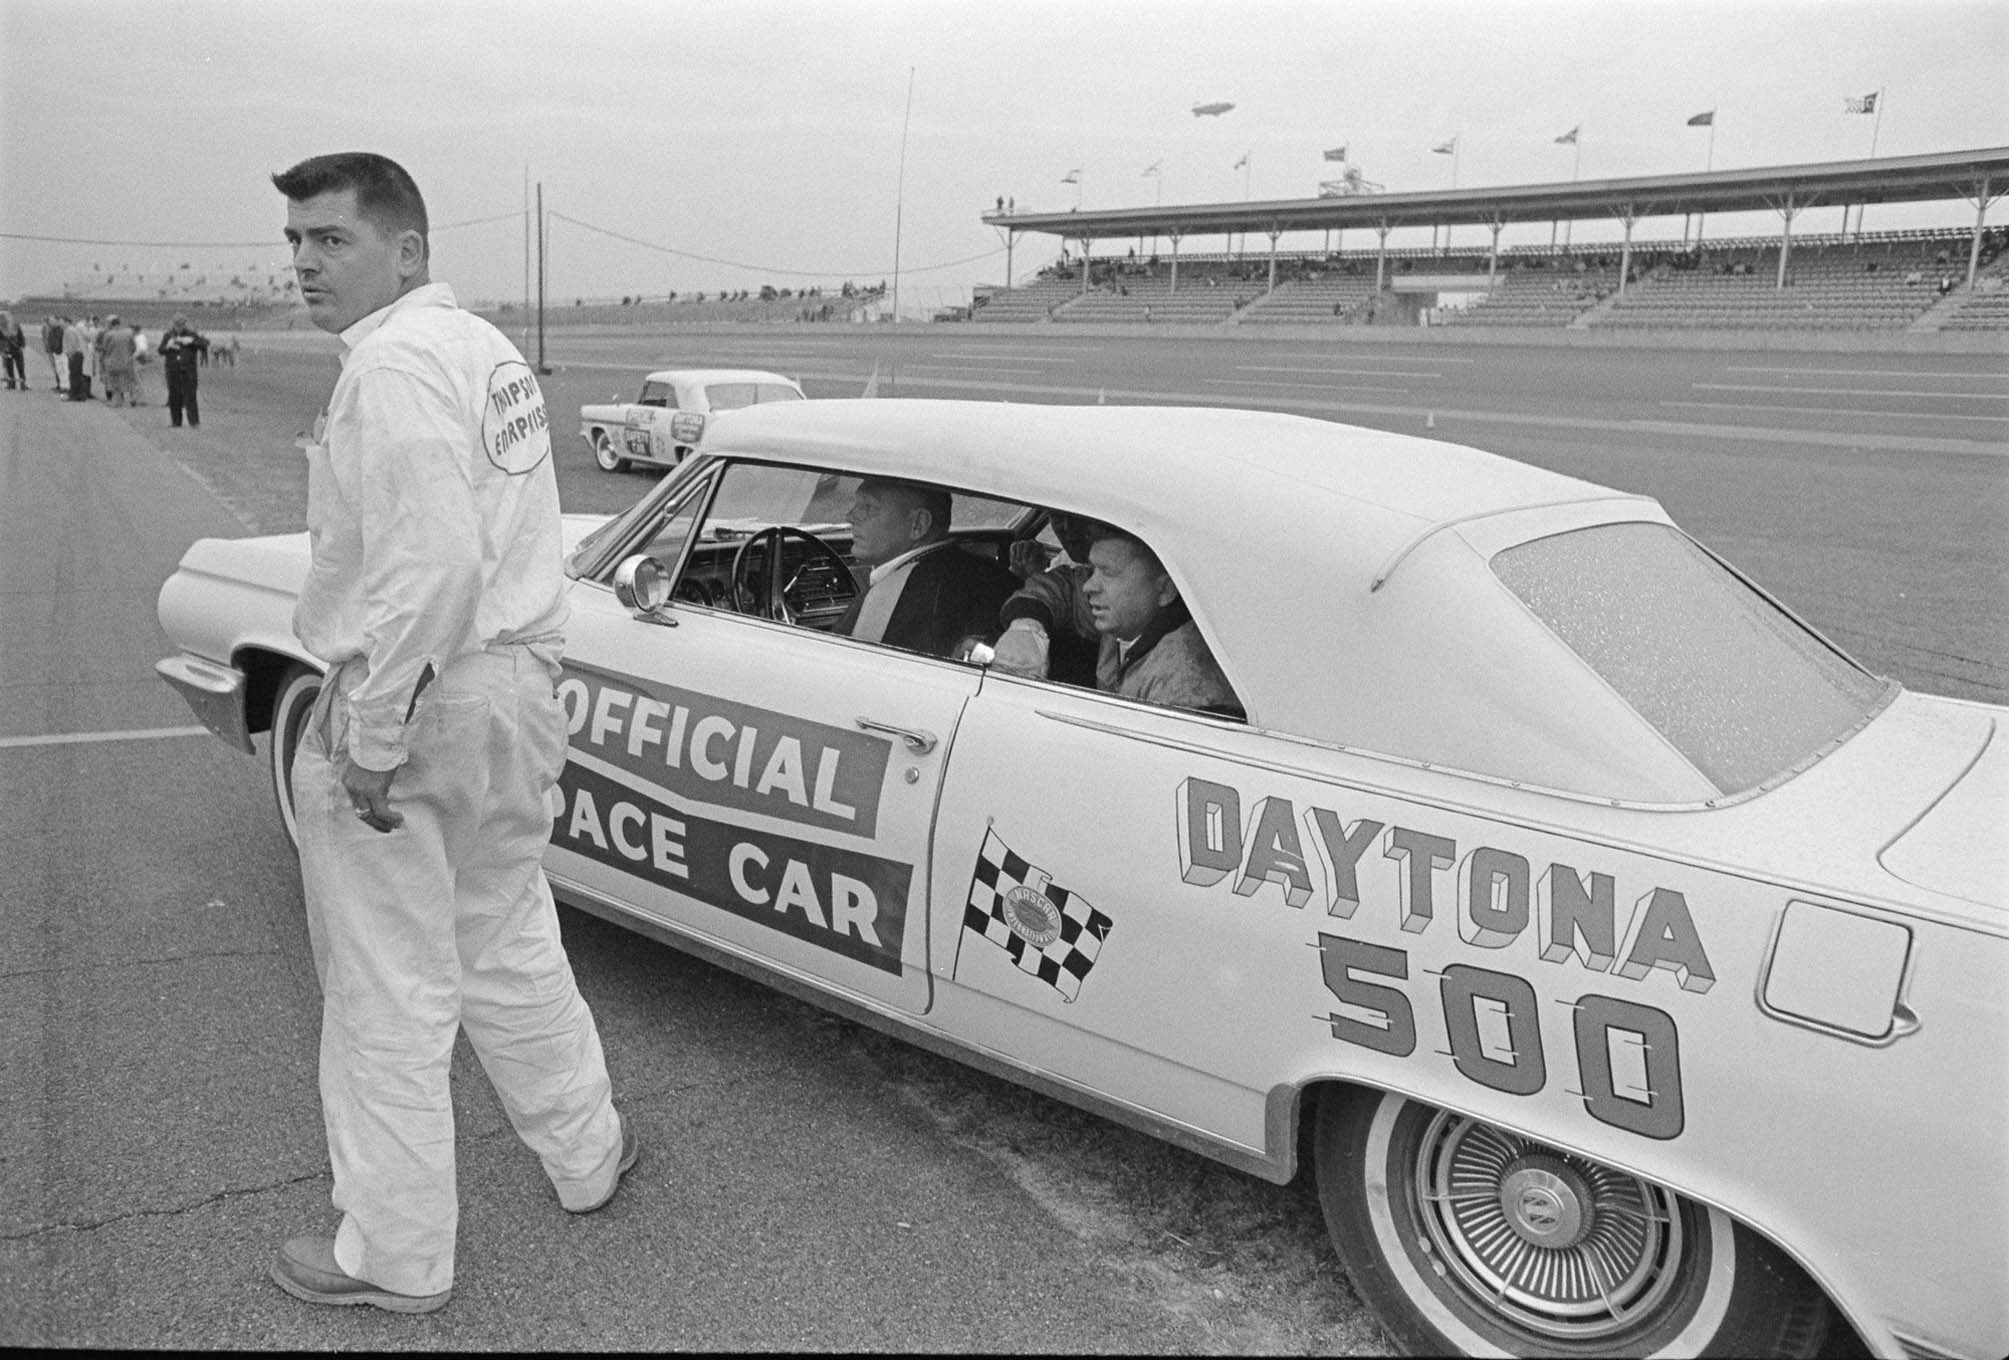 None of our archive images shows Smokey Yunick or Zora Arkus-Duntov in the pits that day, but the 34-year-old Thompson was clearly on HRM photographer Bod D'Olivo's shot list.